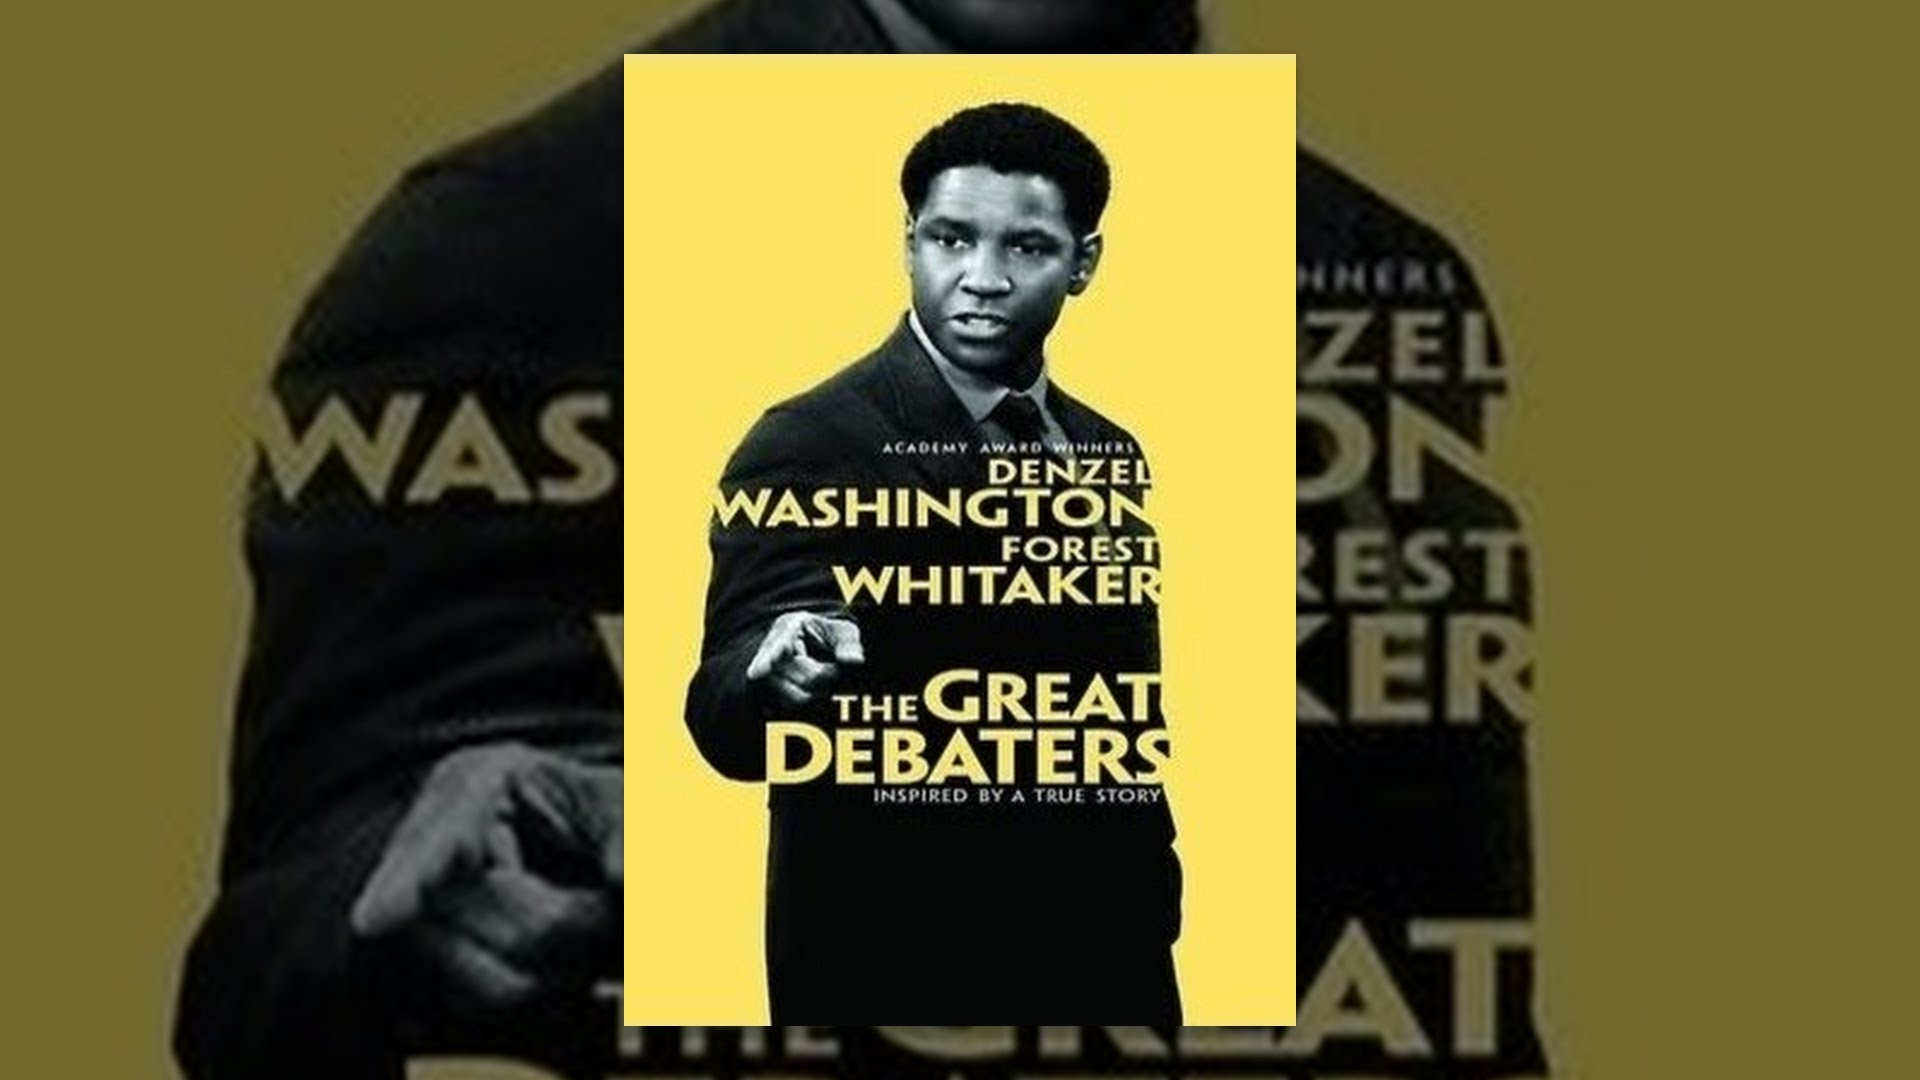 great debaters Watch the great debaters starring denzel washington in this docudrama on directv it's available to watch.